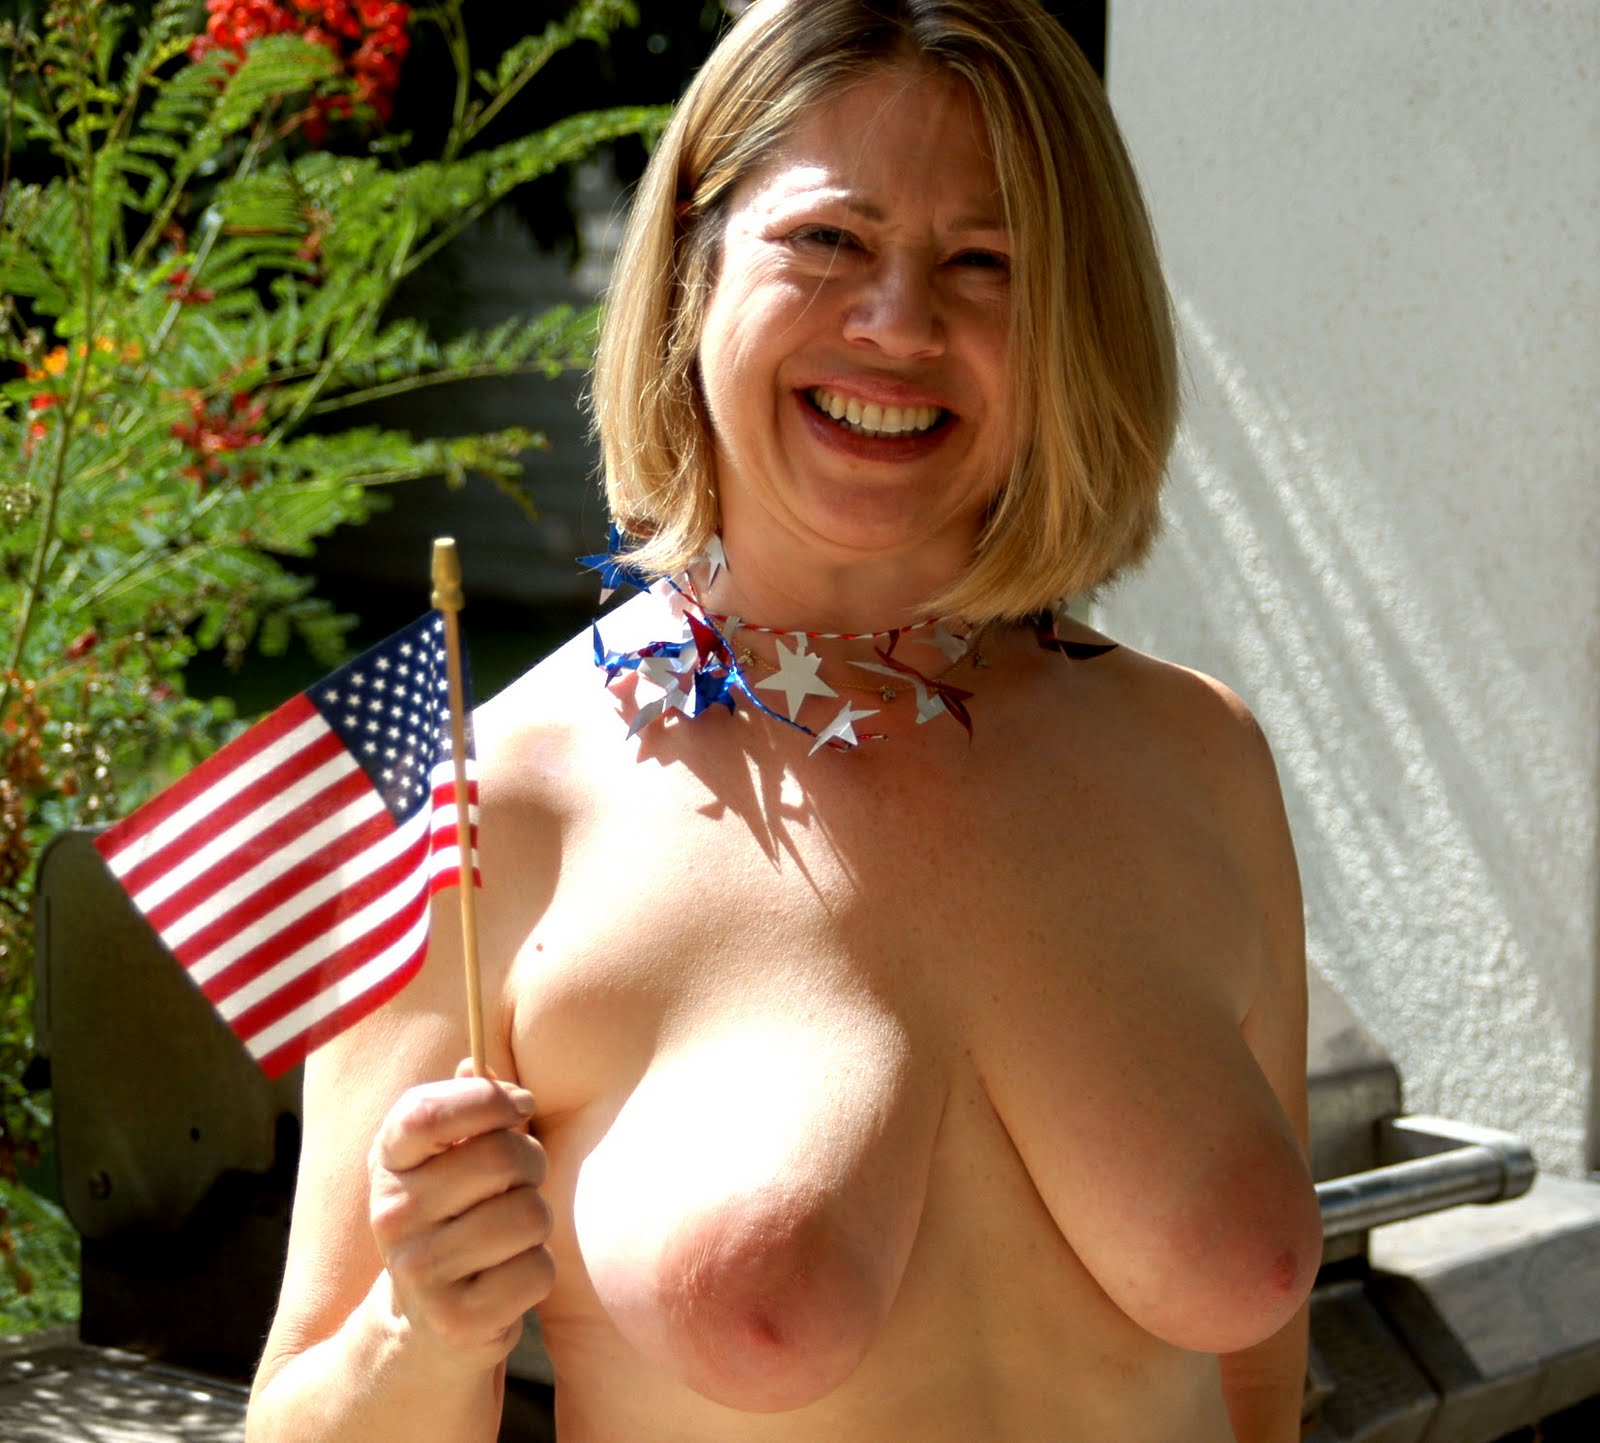 Happy 4th of July everyone from the Terra Cotta Inn nude sunbathing resort ...